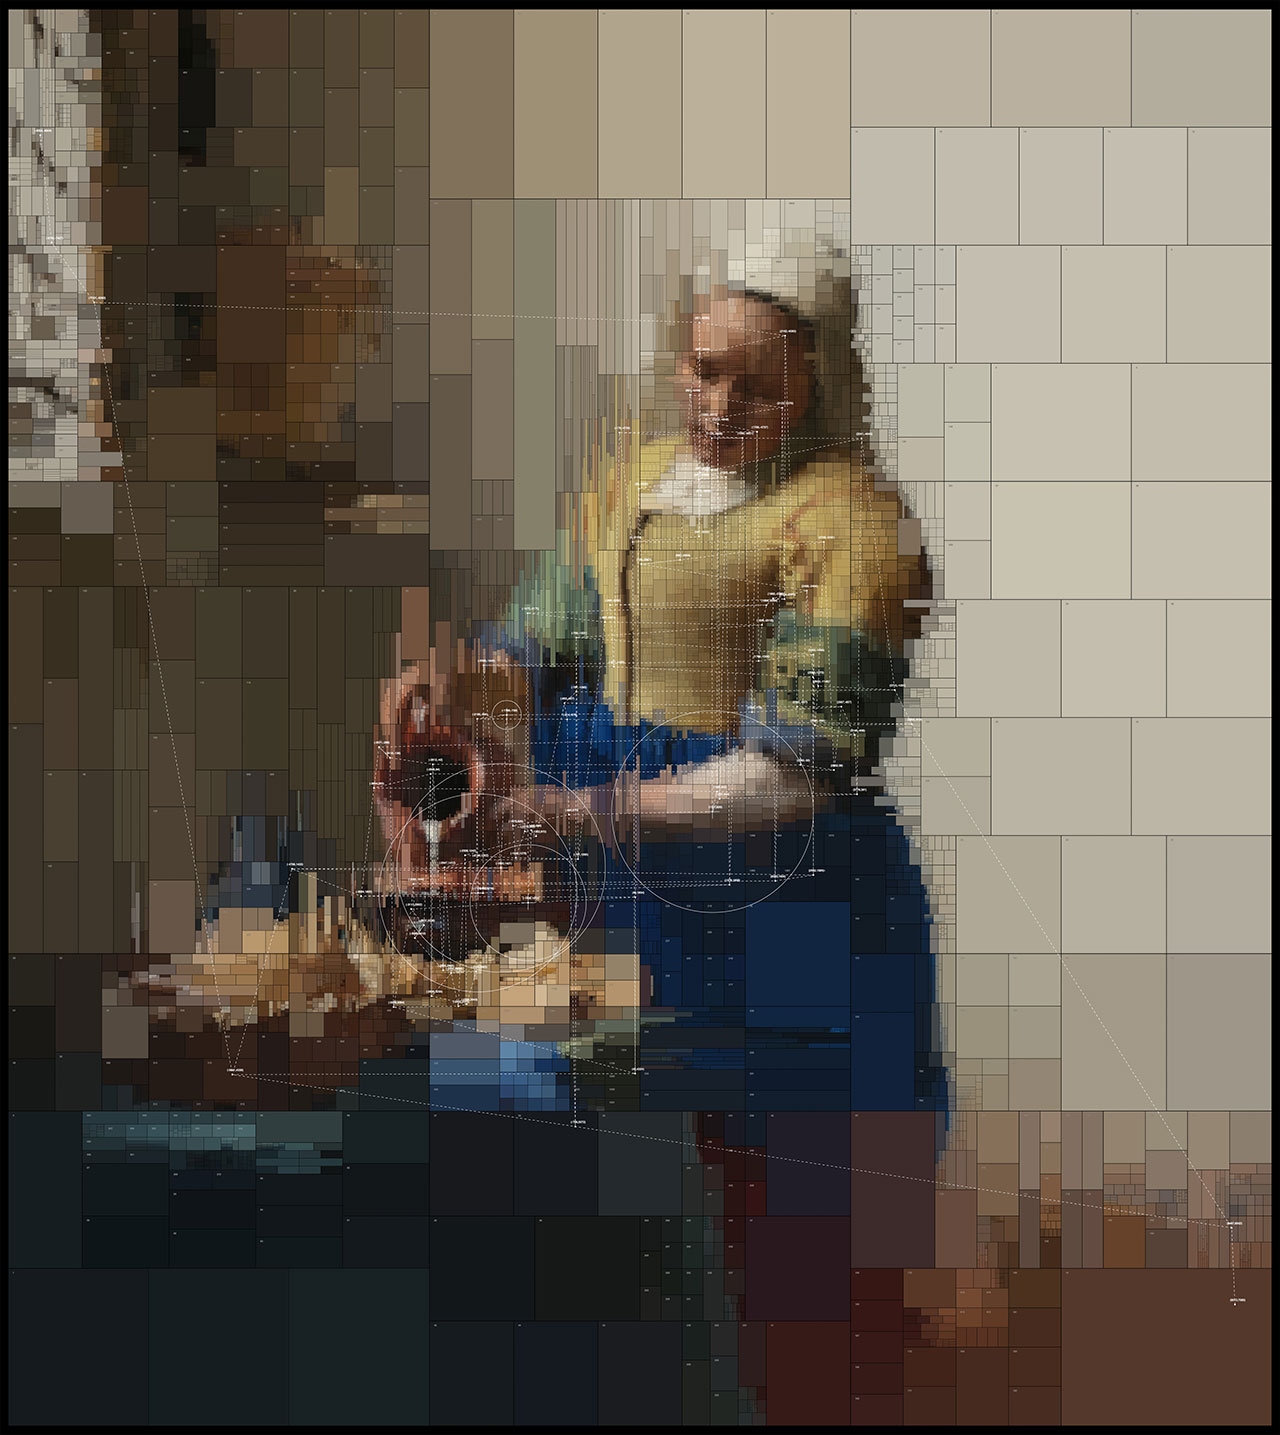 The Milkmaid,from Portraits series by Dimitris Ladopoulos (Original painting by Johannes Vermeer,1657–1658).